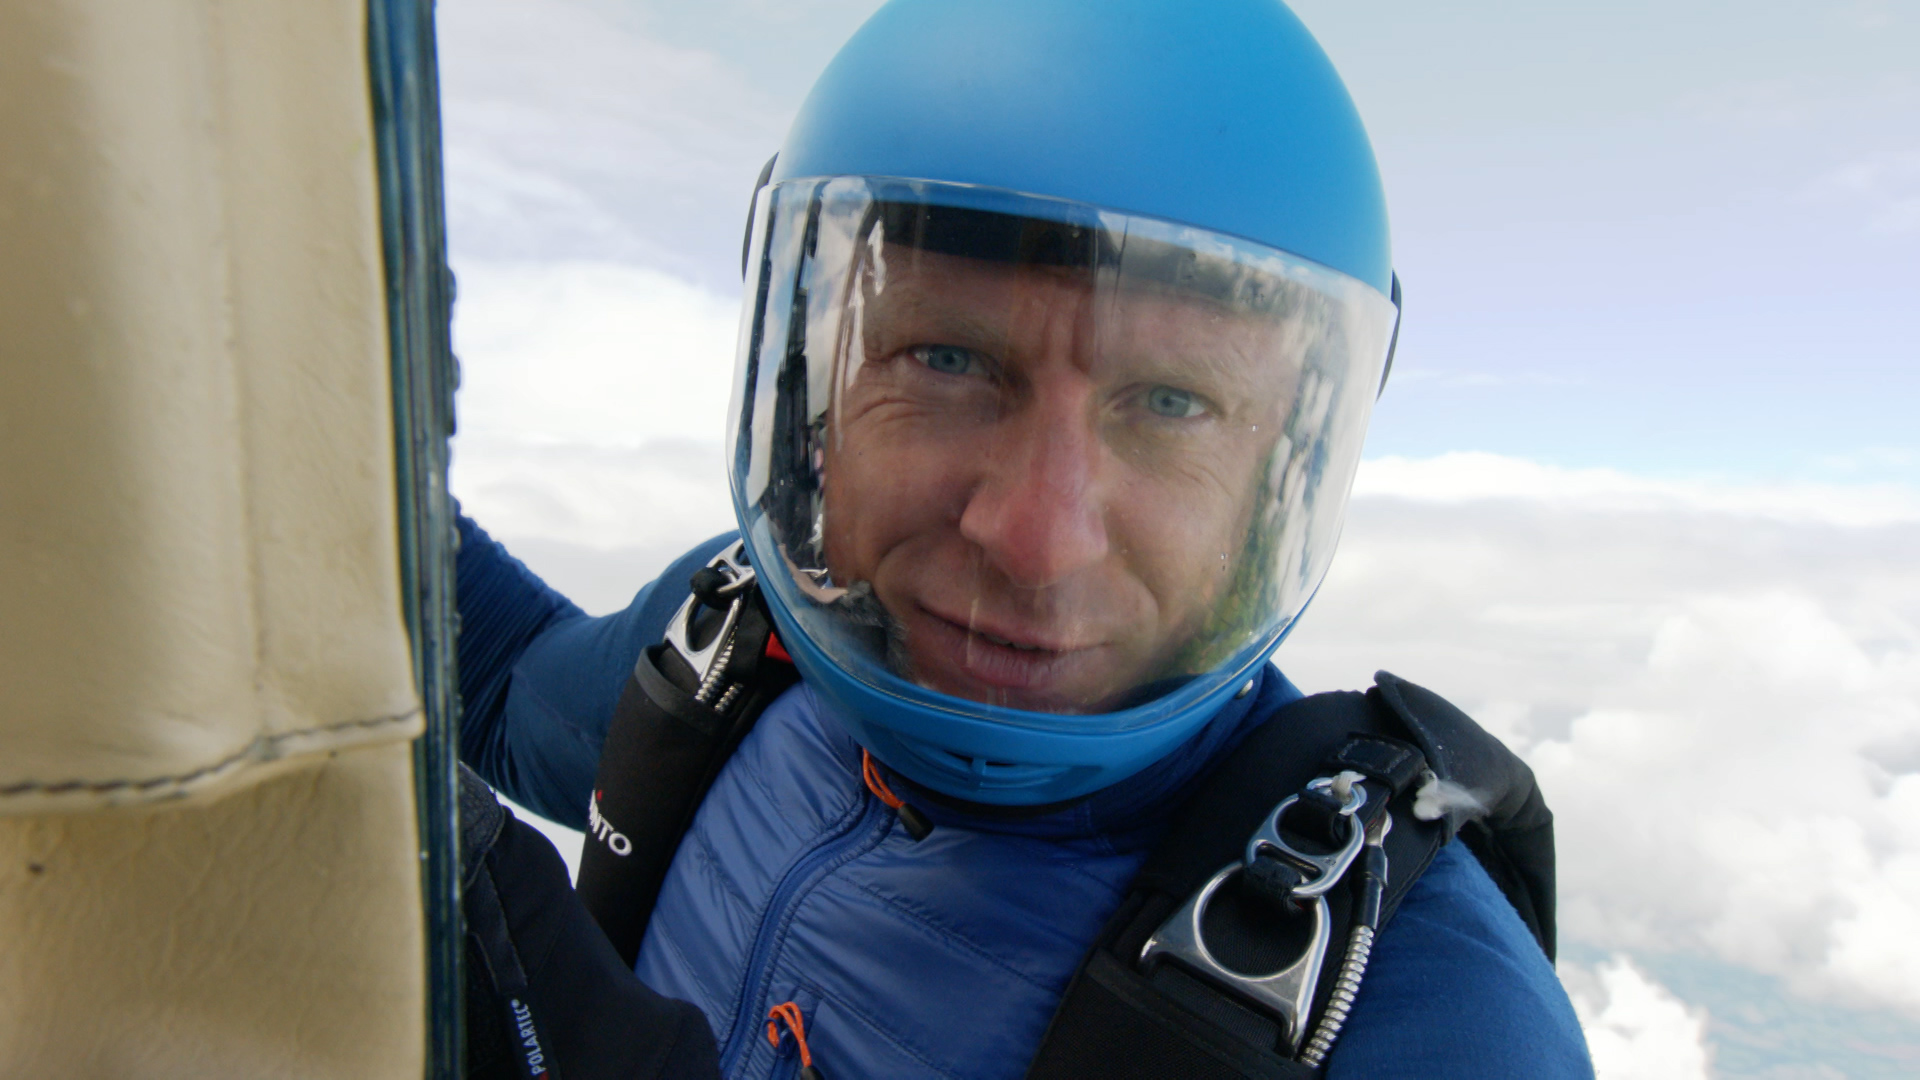 CBBC Beyond Bionic - Andy Torbet hanging onto the side of a plane